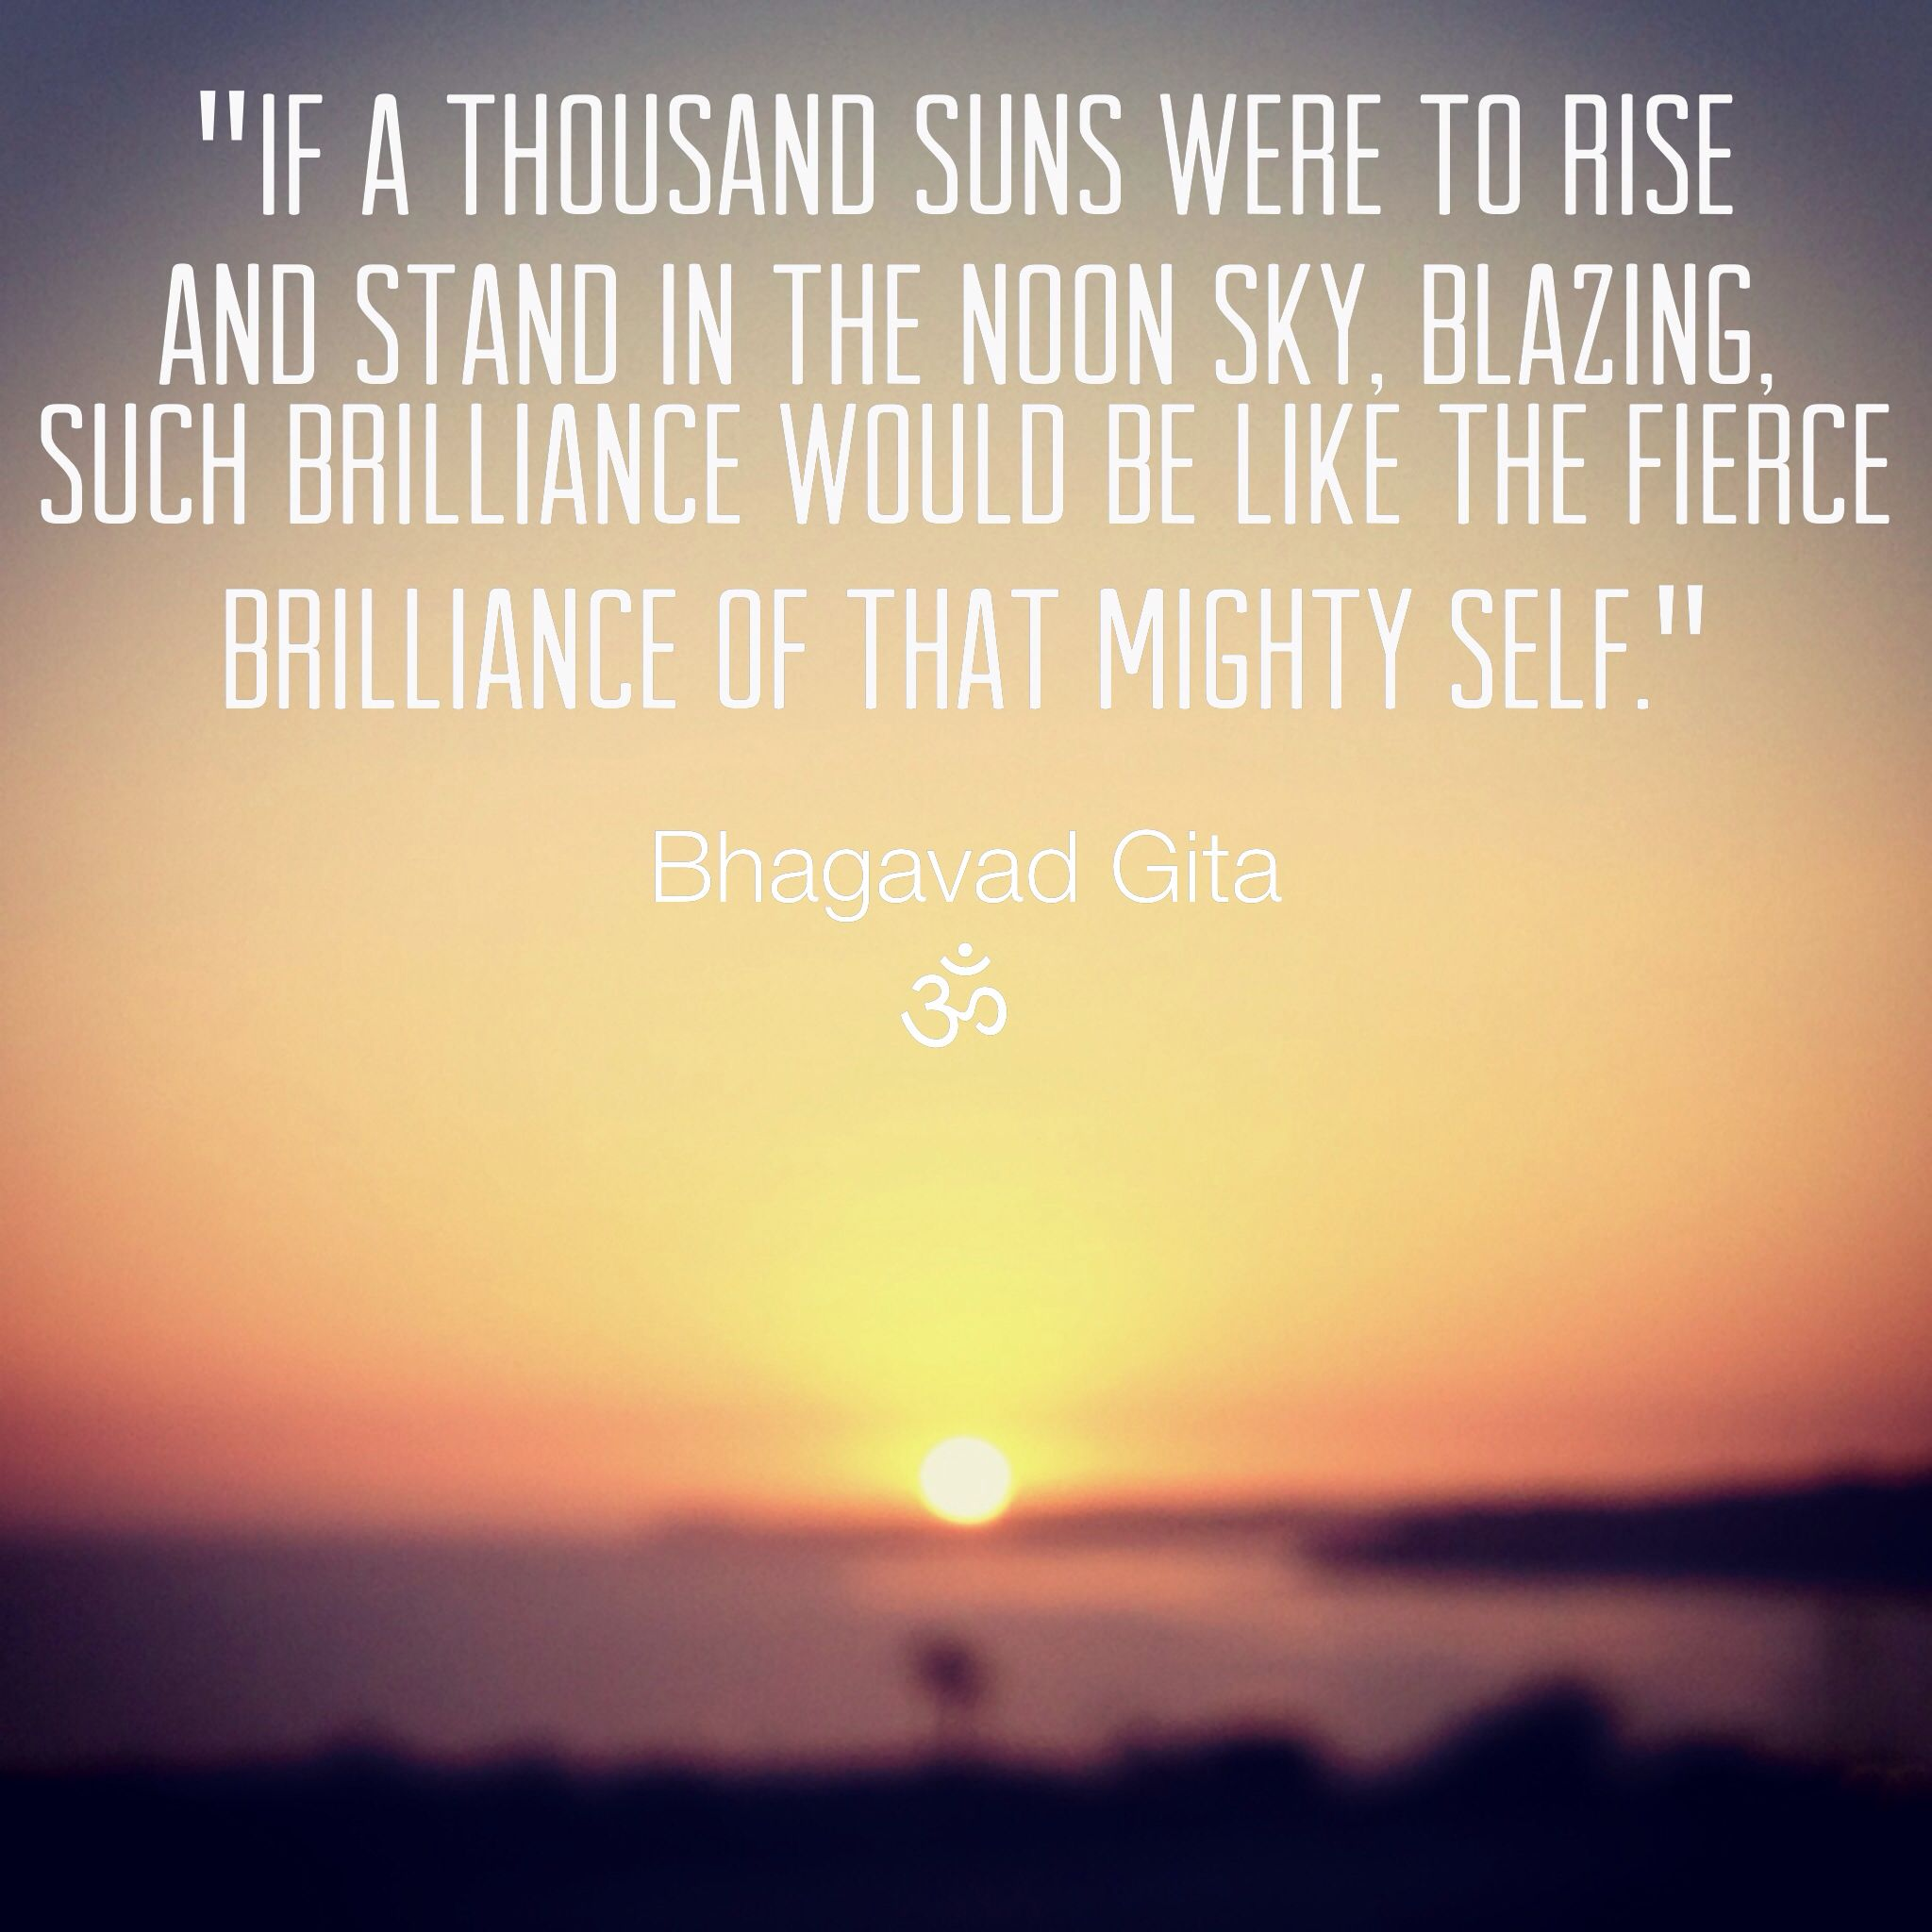 Bhagavad Gita Quotes I Couldn't Find My Favorite Quote From Bhagavad Gita Anywhere On